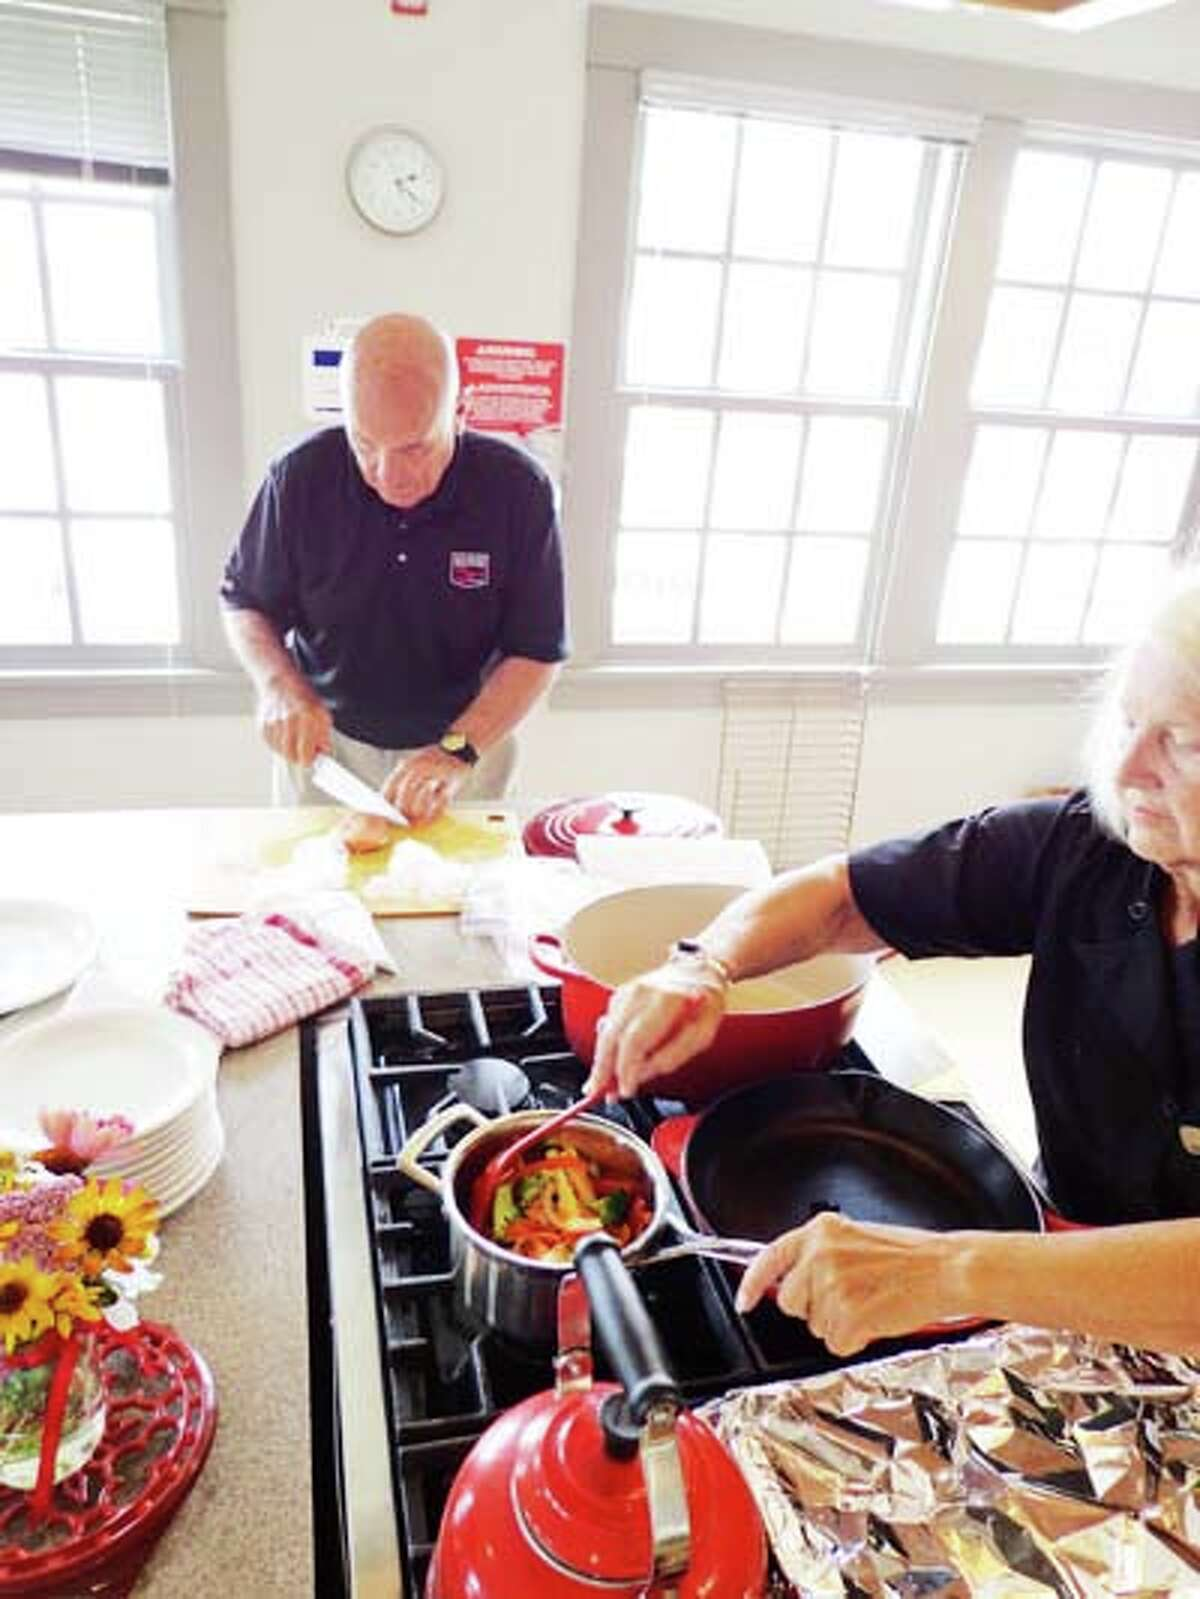 COOKING CLASS: ChefJoe Muer works in the kitchen at the Oliver Center of the Arts in downtown Frankfort. He will be leading a series of cooking classes that the center will be hosting in the coming weeks for parents and children alike.